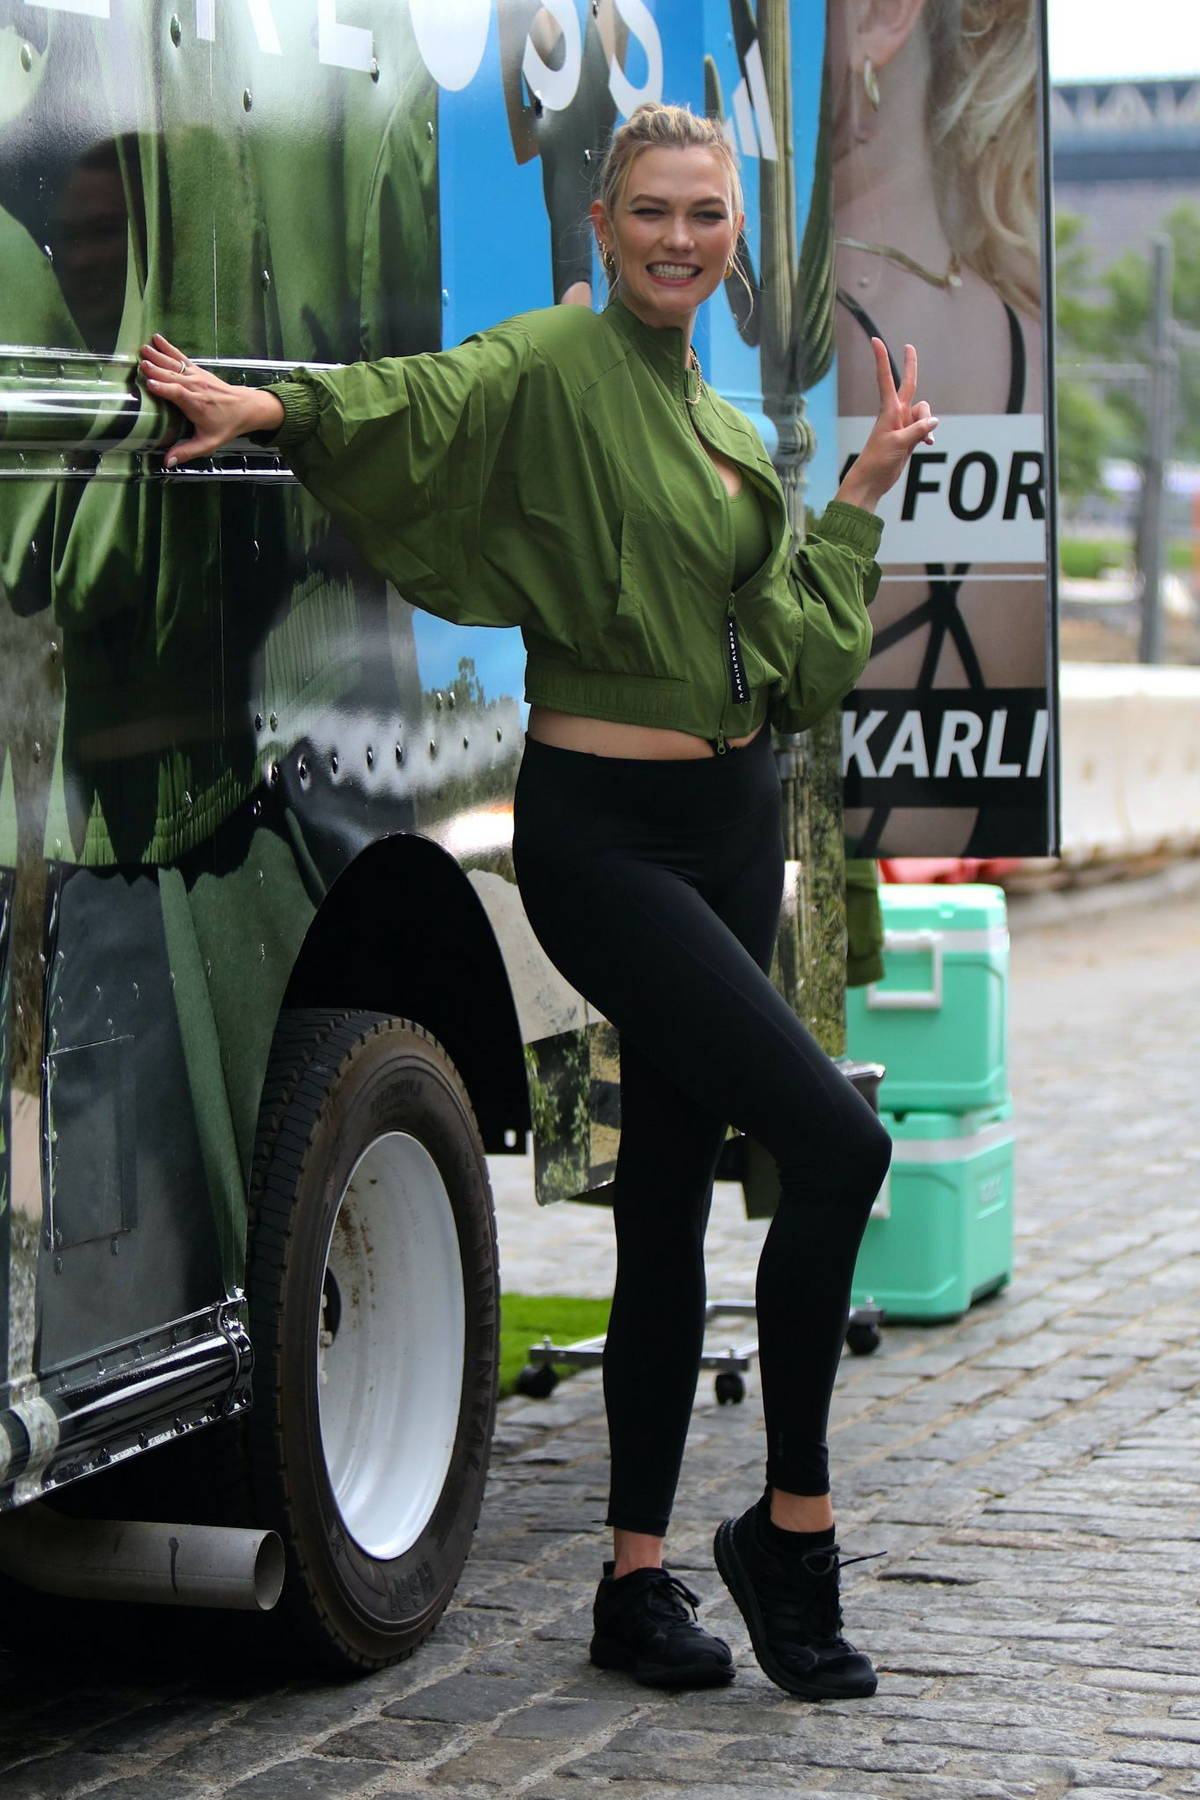 Karlie Kloss poses during a photoshoot for 'Karlie Kloss x Adidas' in New York City